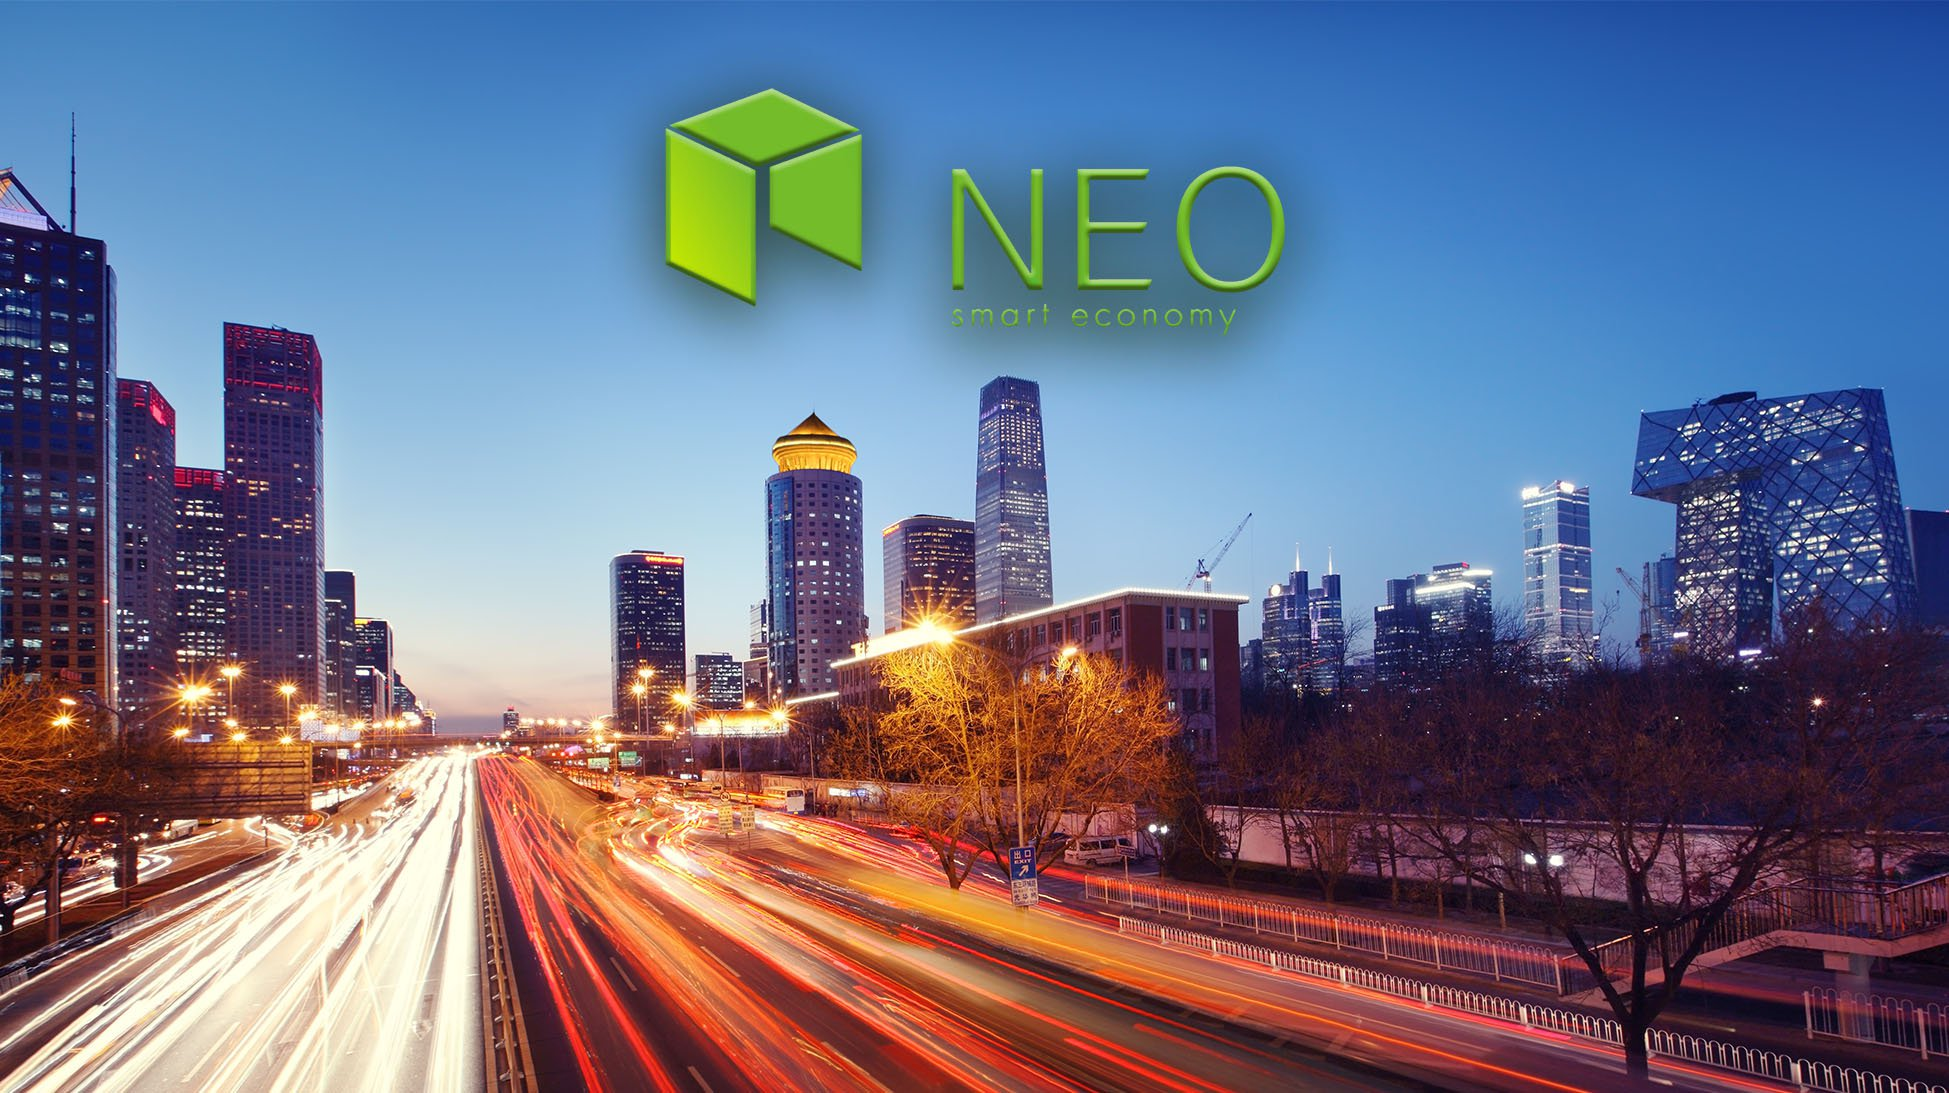 Antshares Rebrands, Introduces NEO and the New Smart Economy